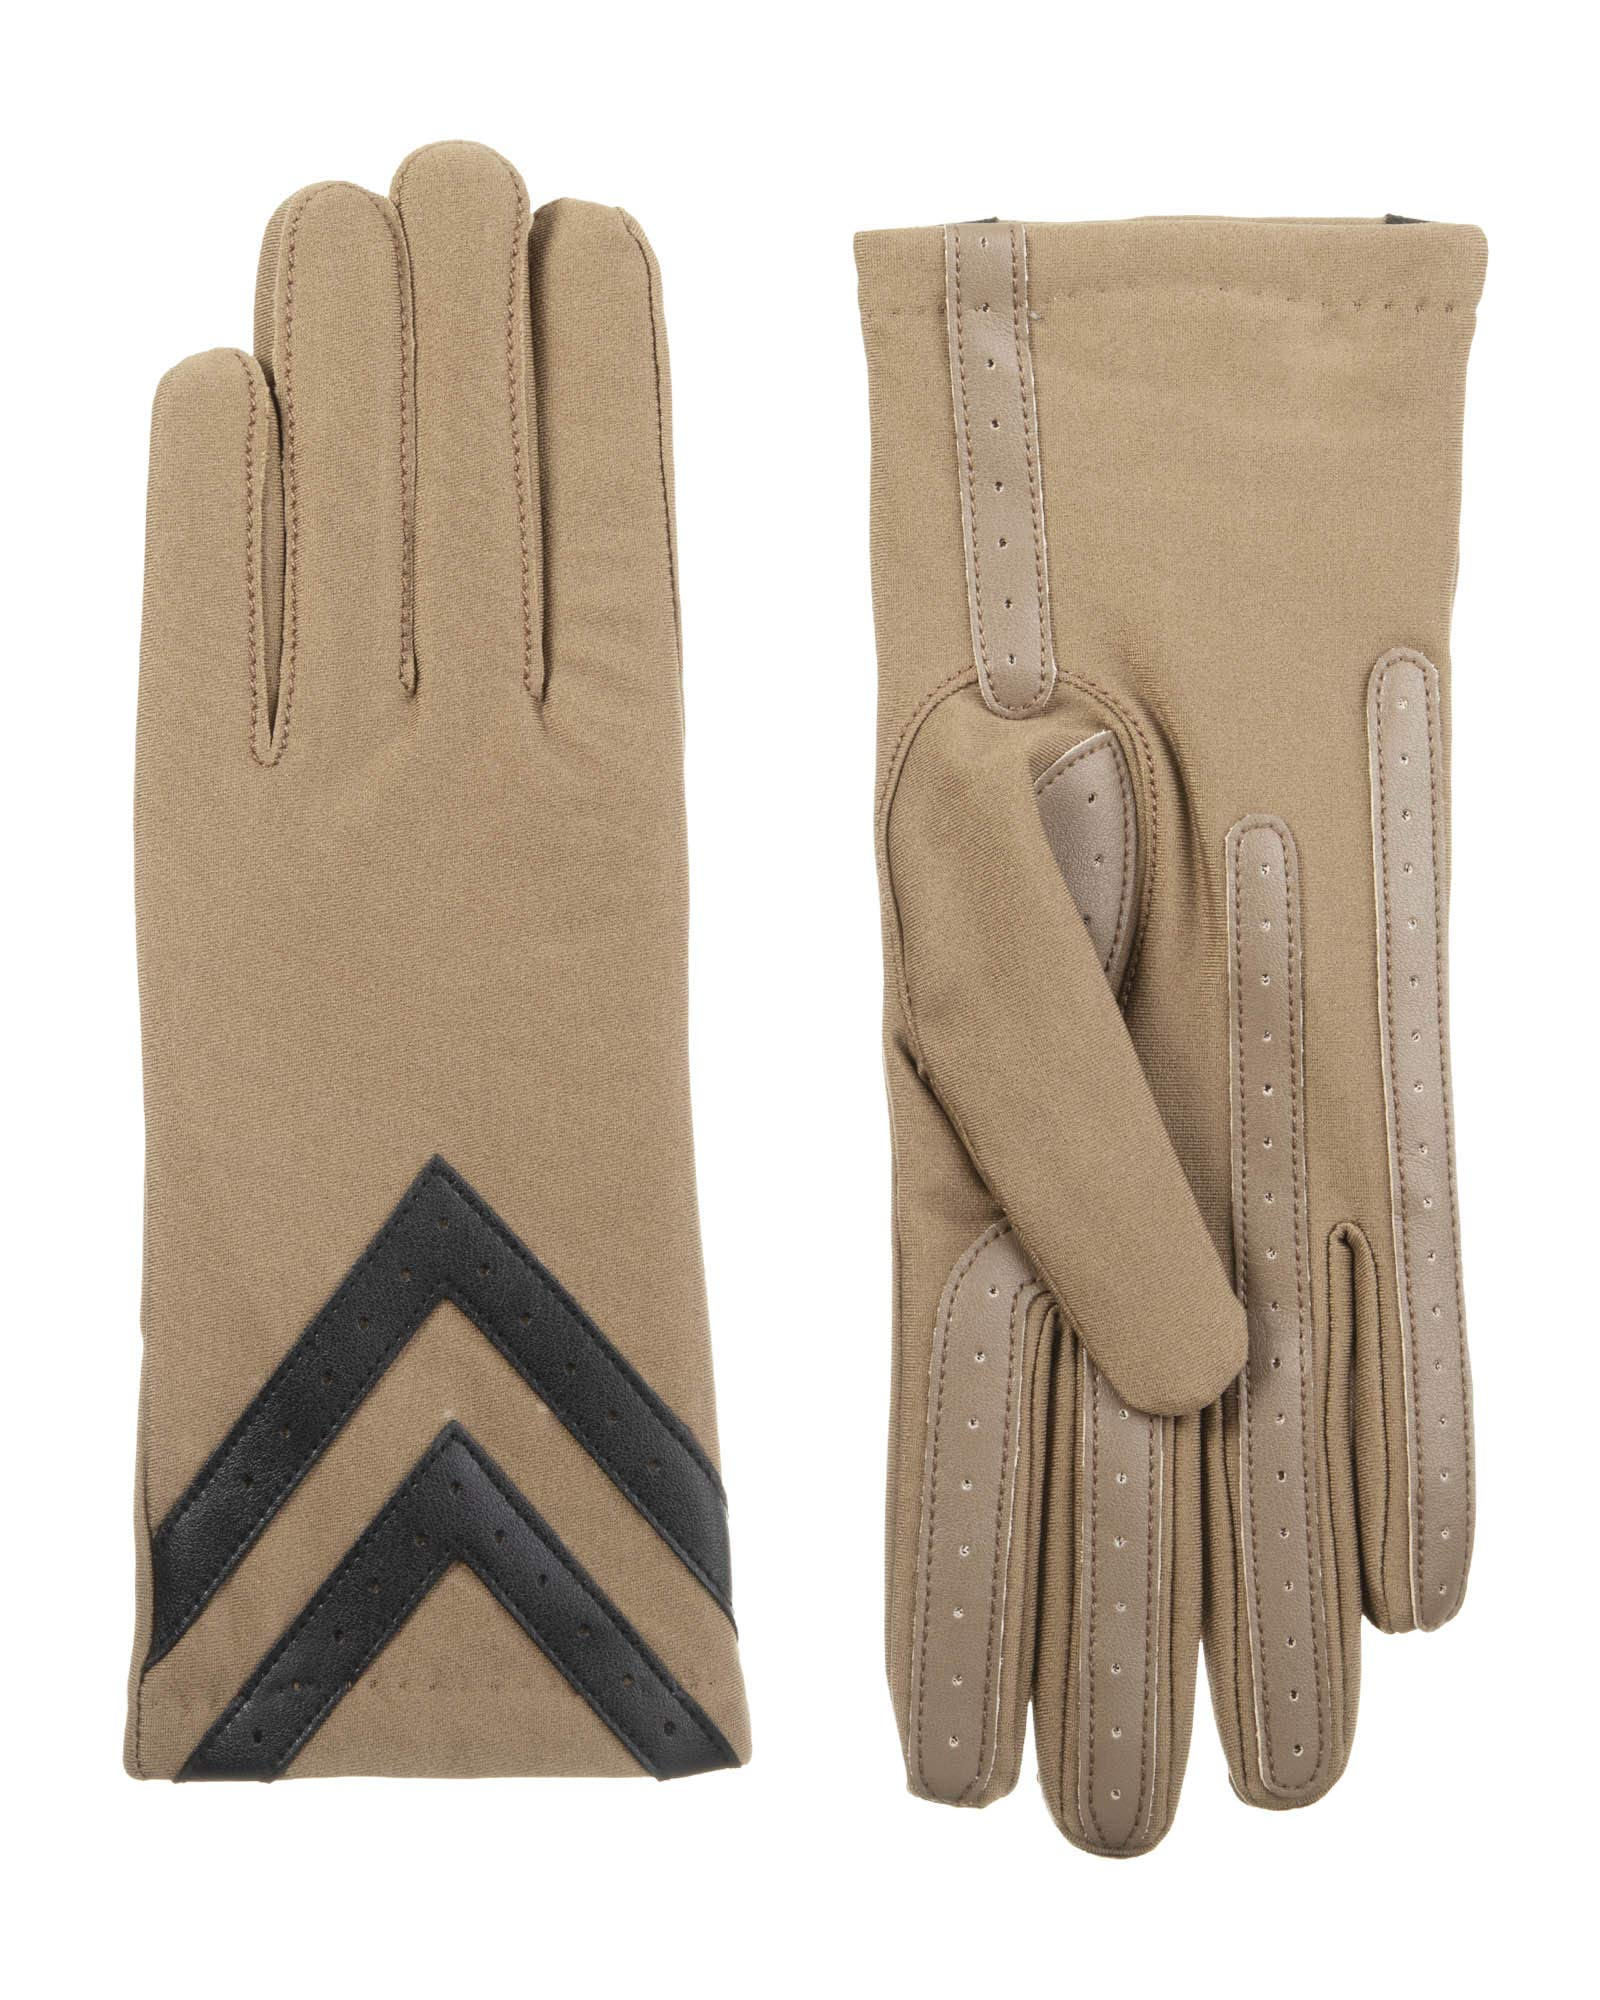 Isotoner Classic Stretch Tech Touch Gloves, Taupe, Large/Extra Large by ISOTONER